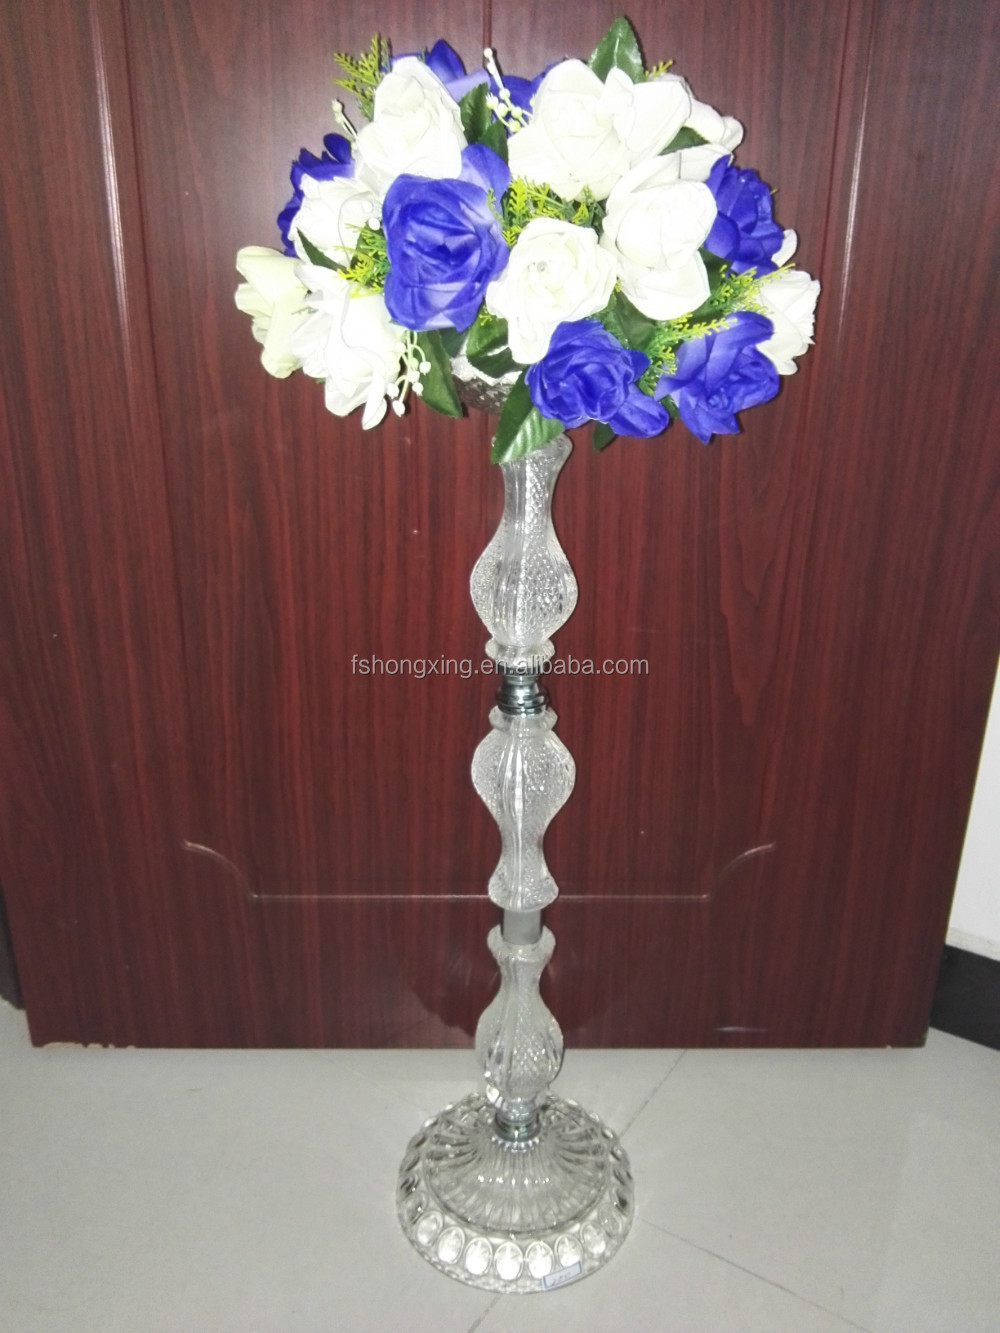 Wedding Table Flower Stands Flower Vase For Wedding Table Centerpieces Wedding Decoration